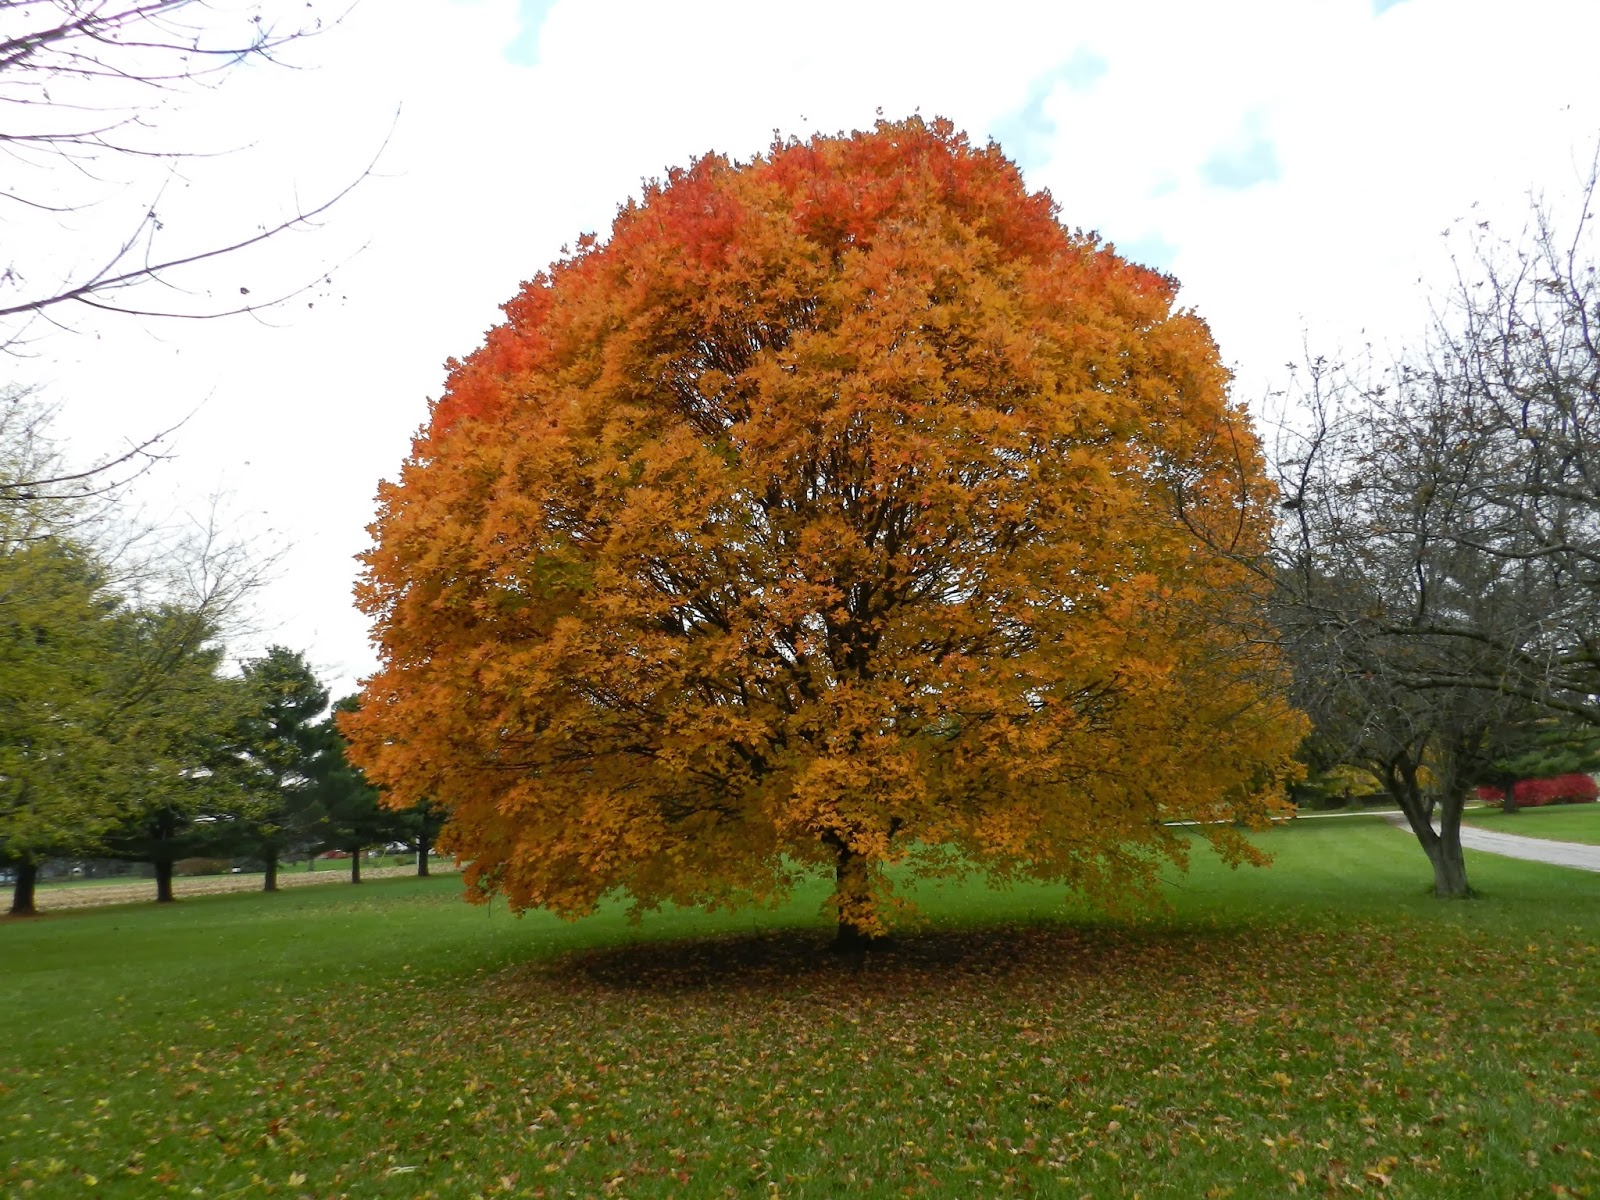 The colors of autumn viral infections articles